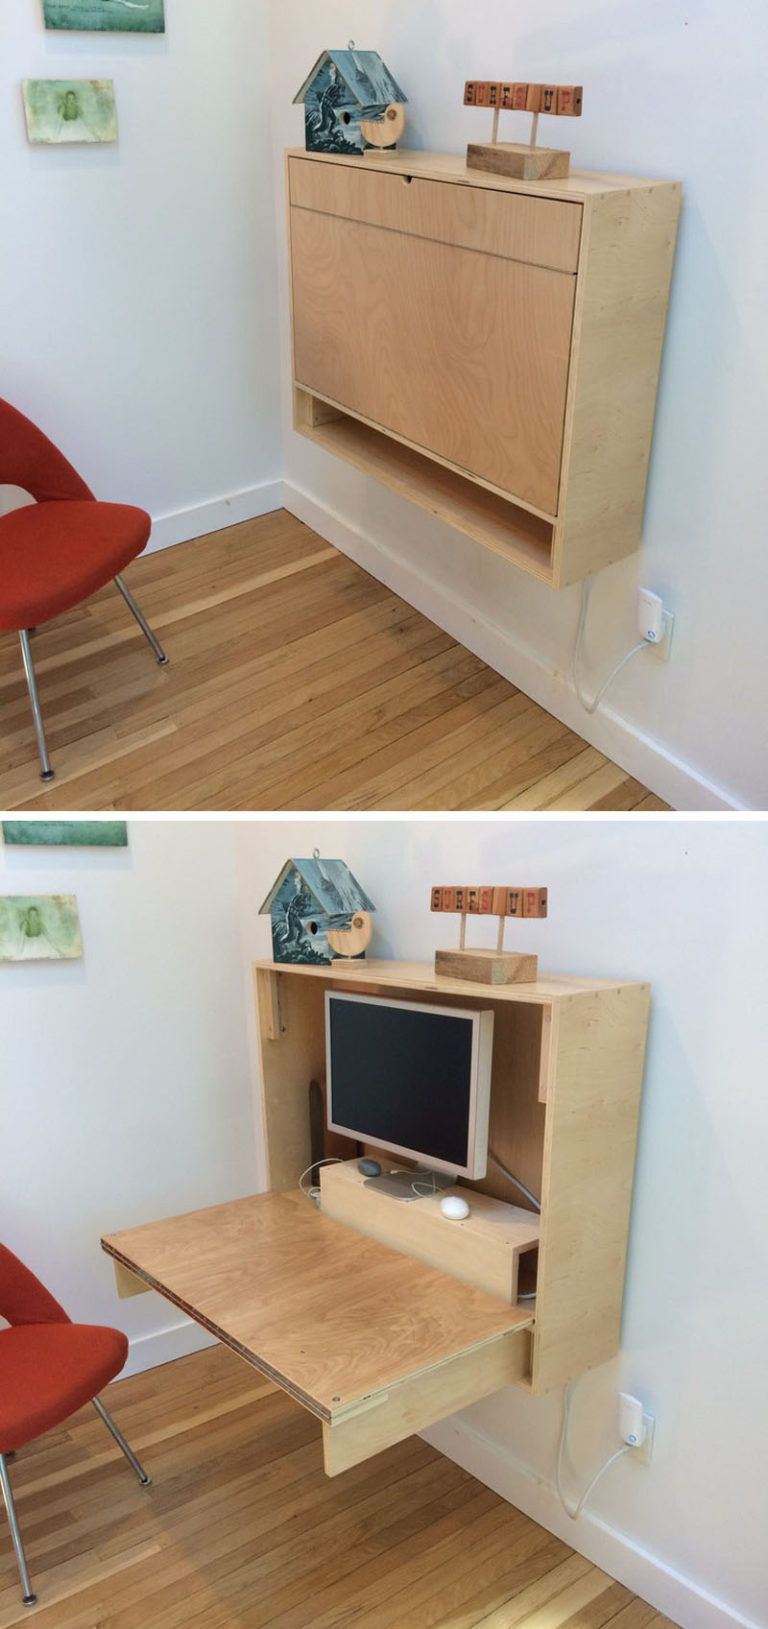 16 Wall Desk Ideas That Are Great For Small Spaces Small